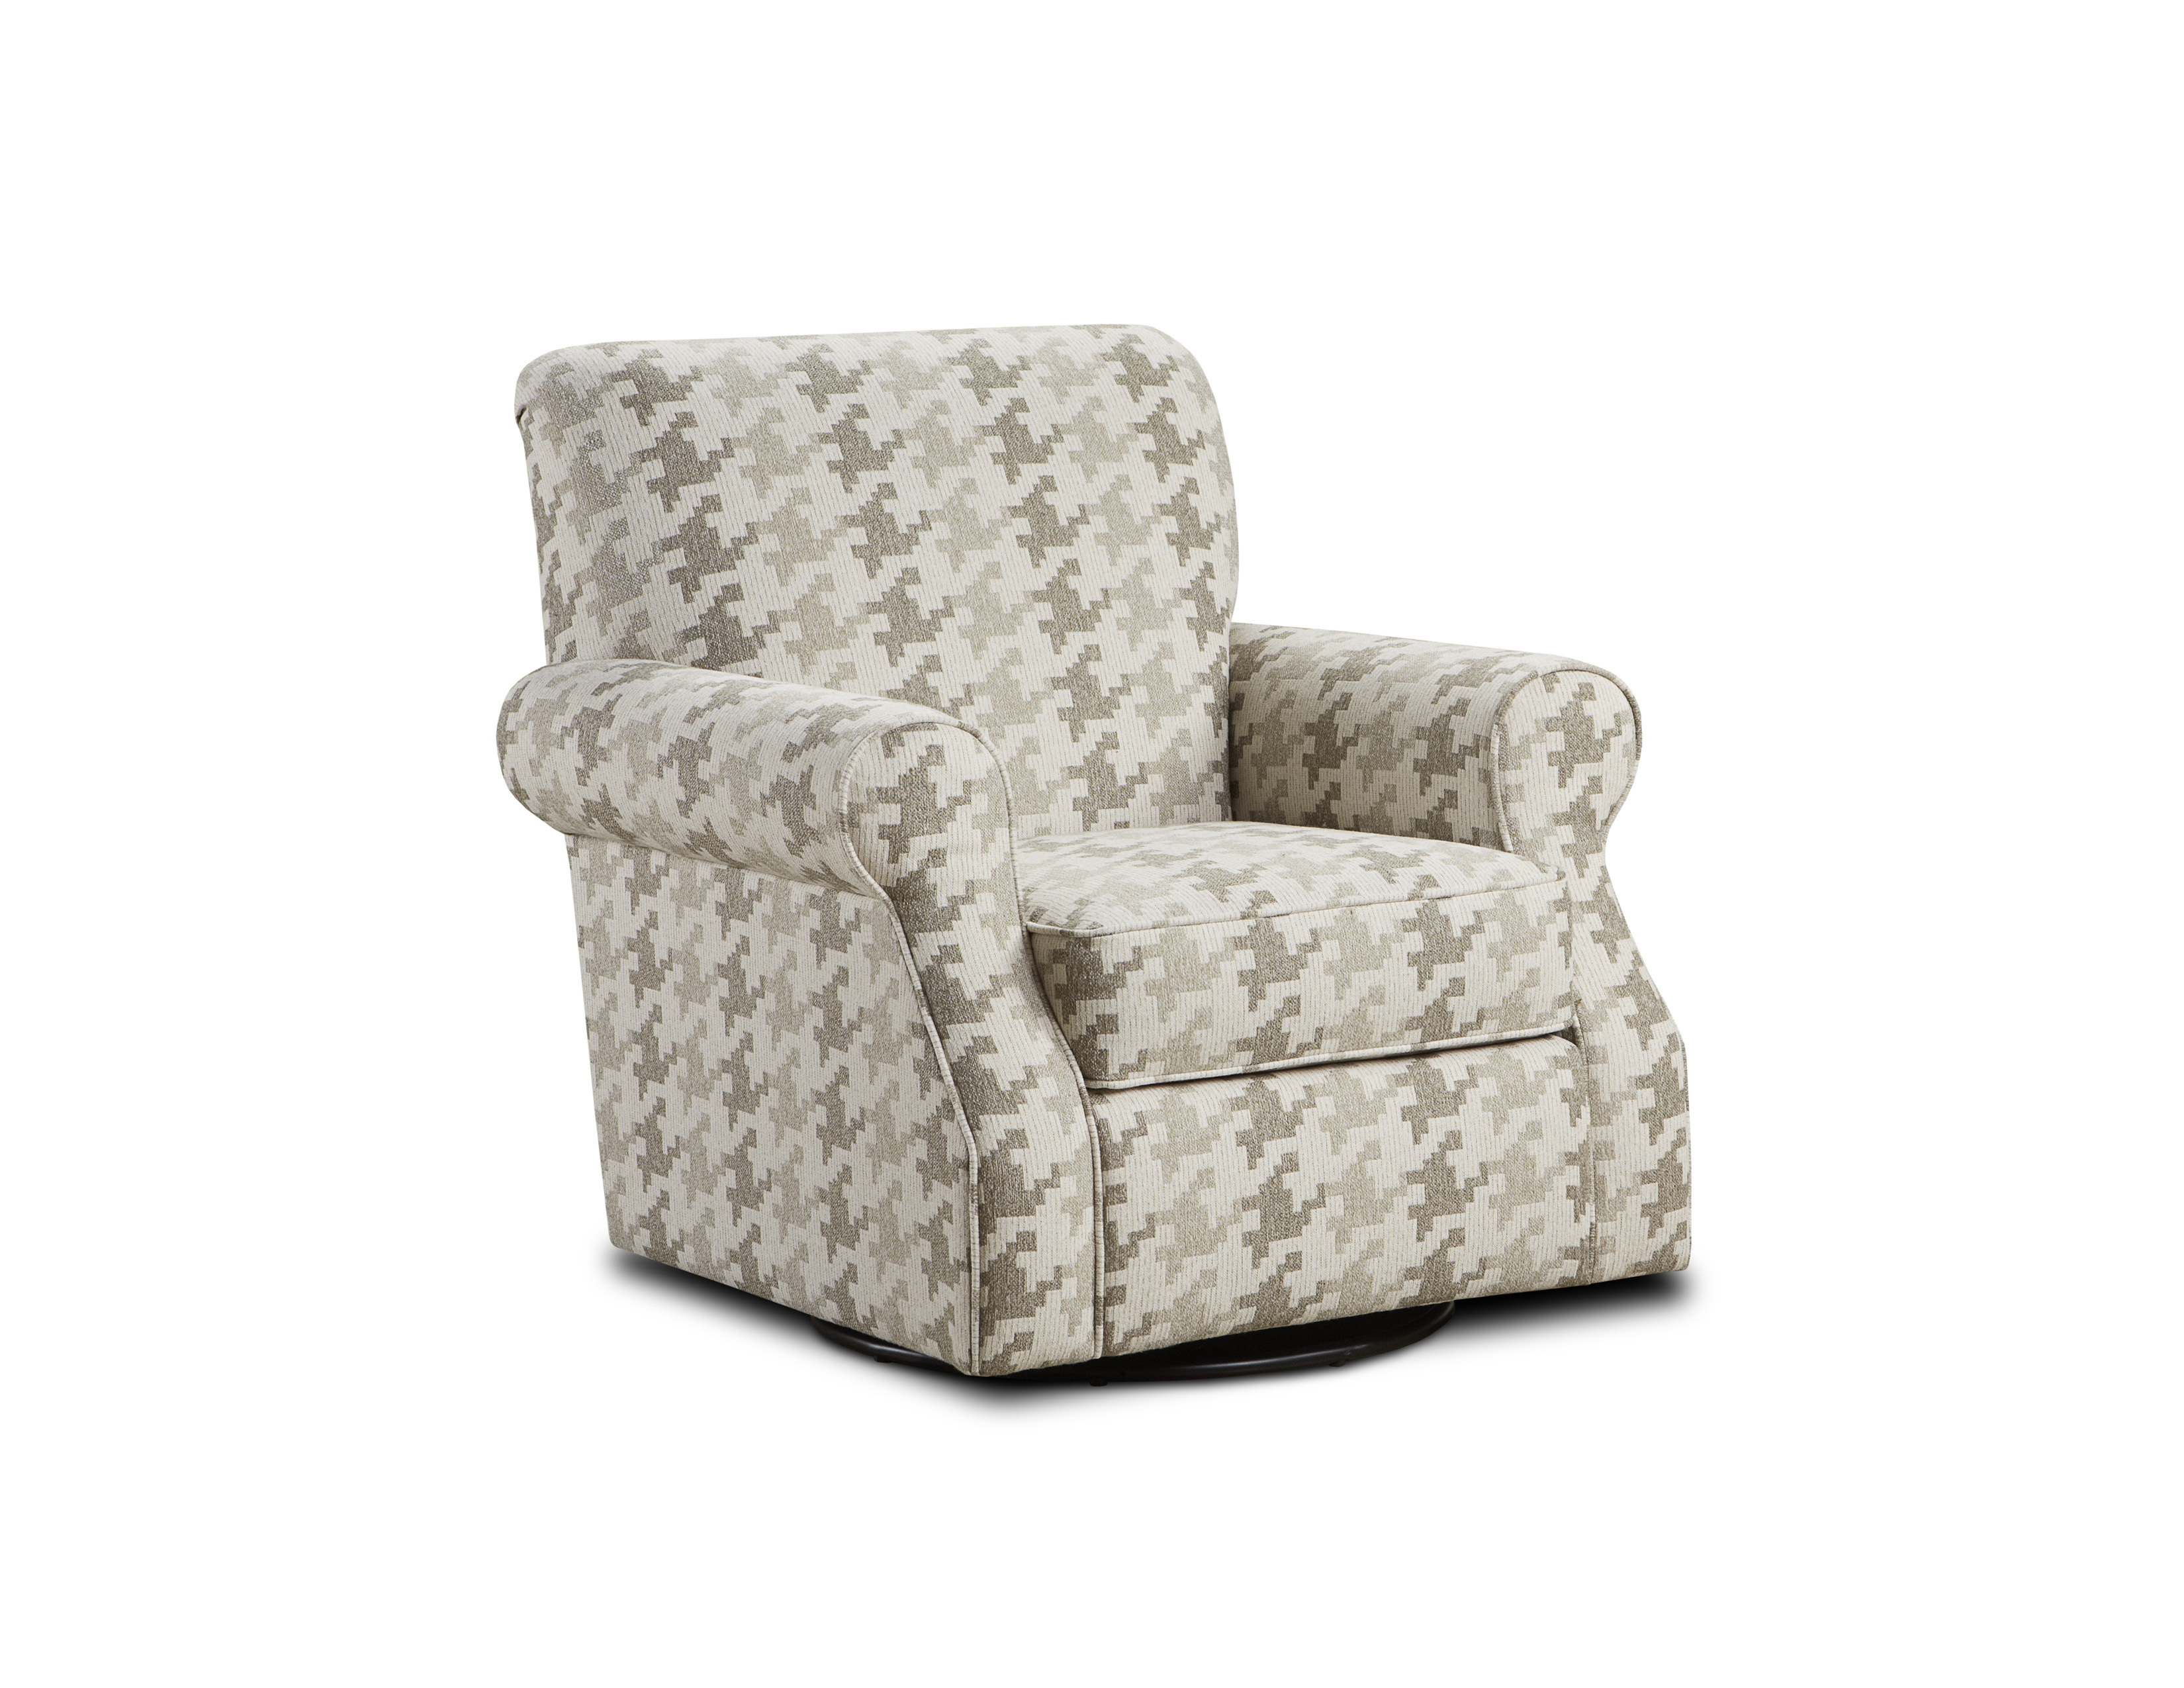 CC Con Fusion Furniture chair, Basic Wool collection